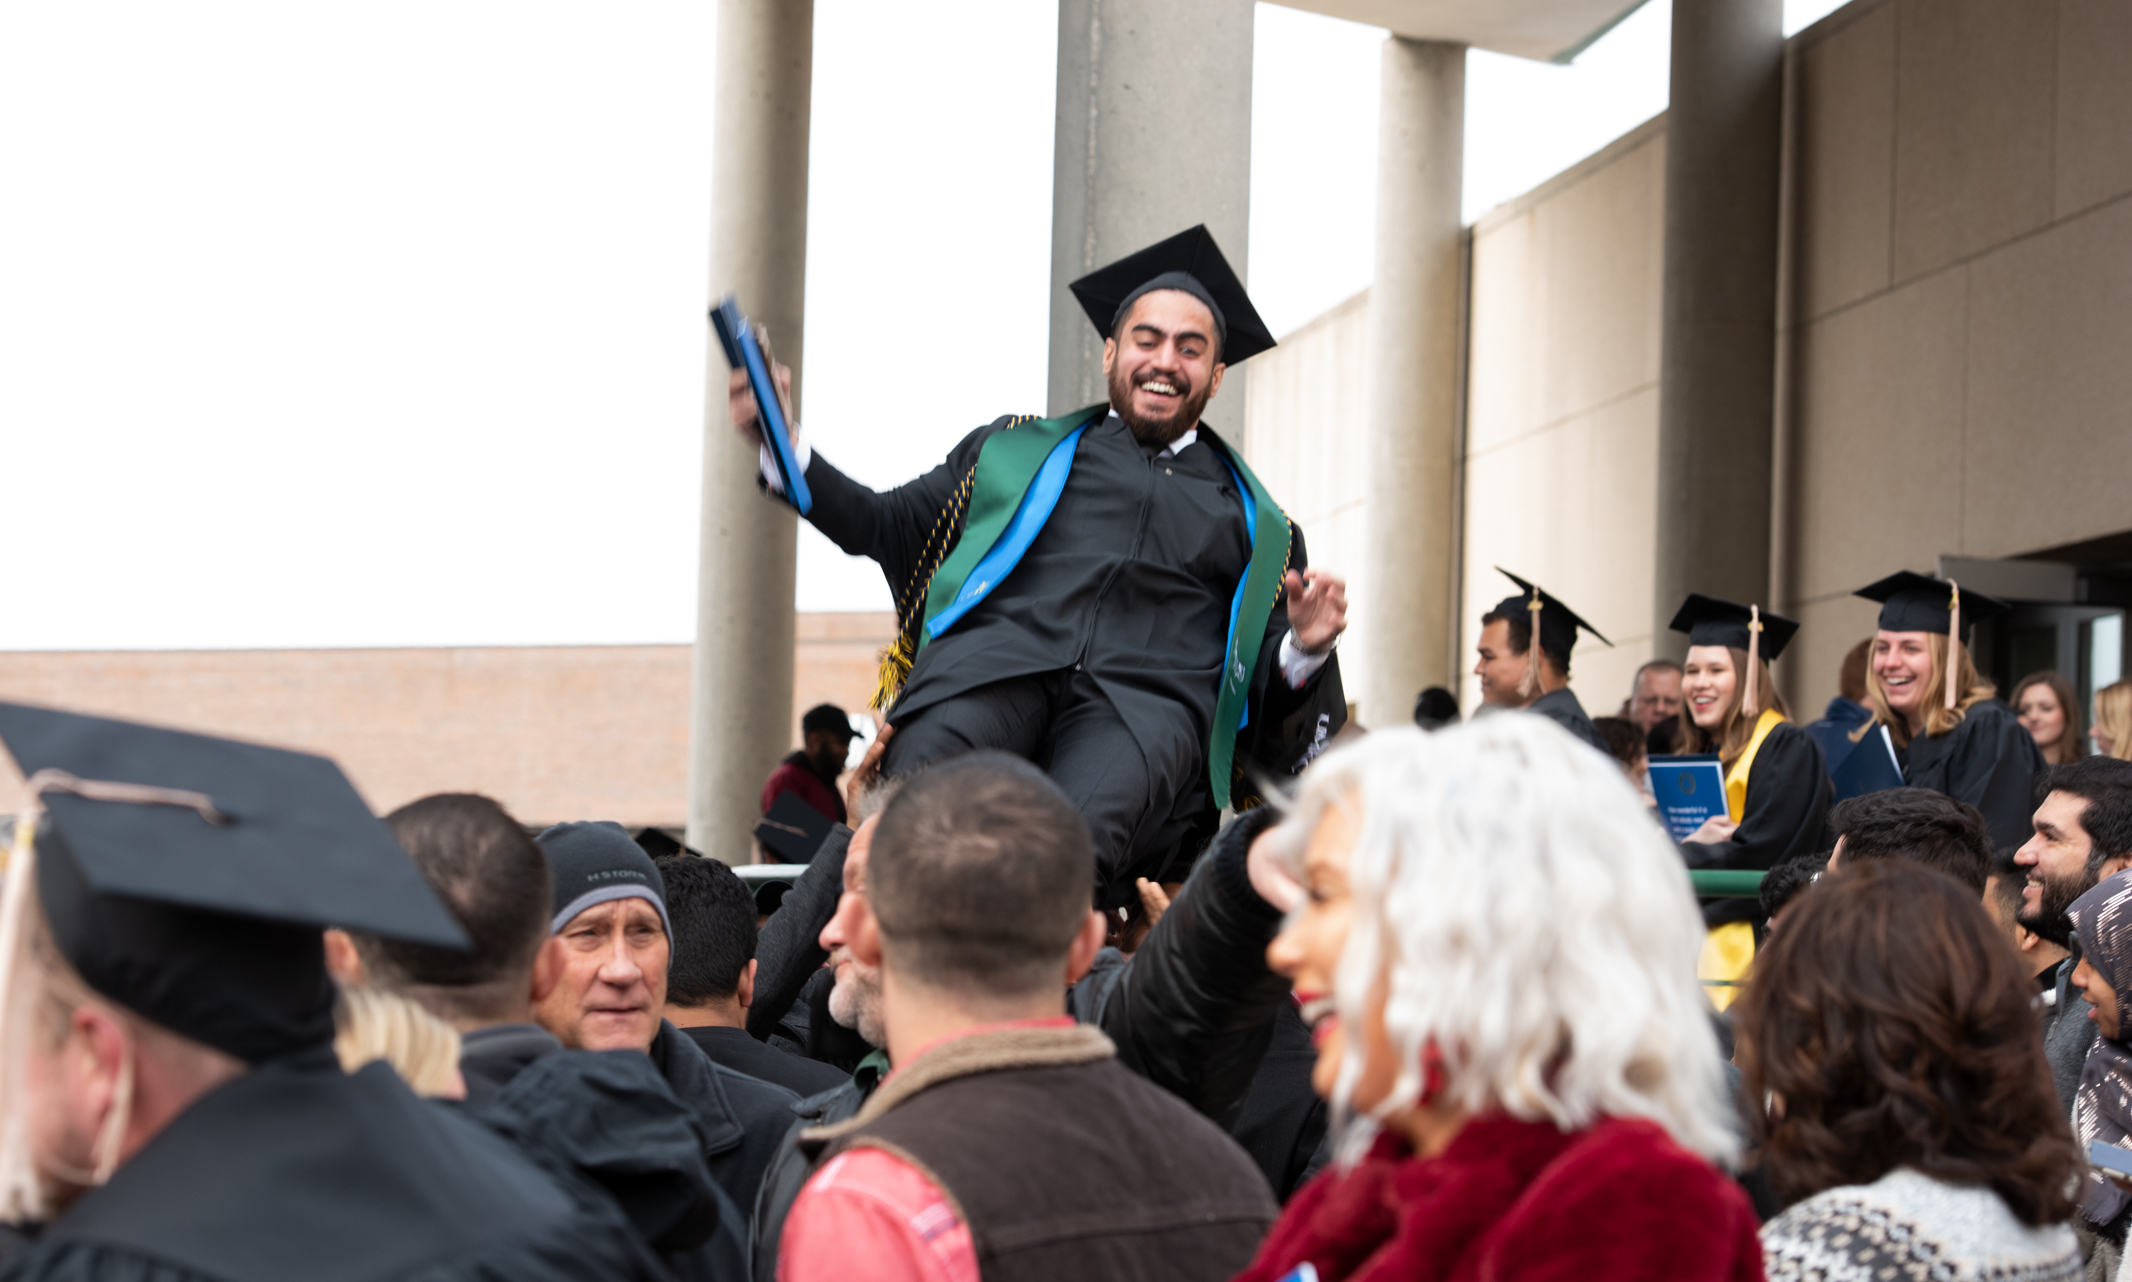 student is lifted onto the shoulders of congratulating friends and family after graduation